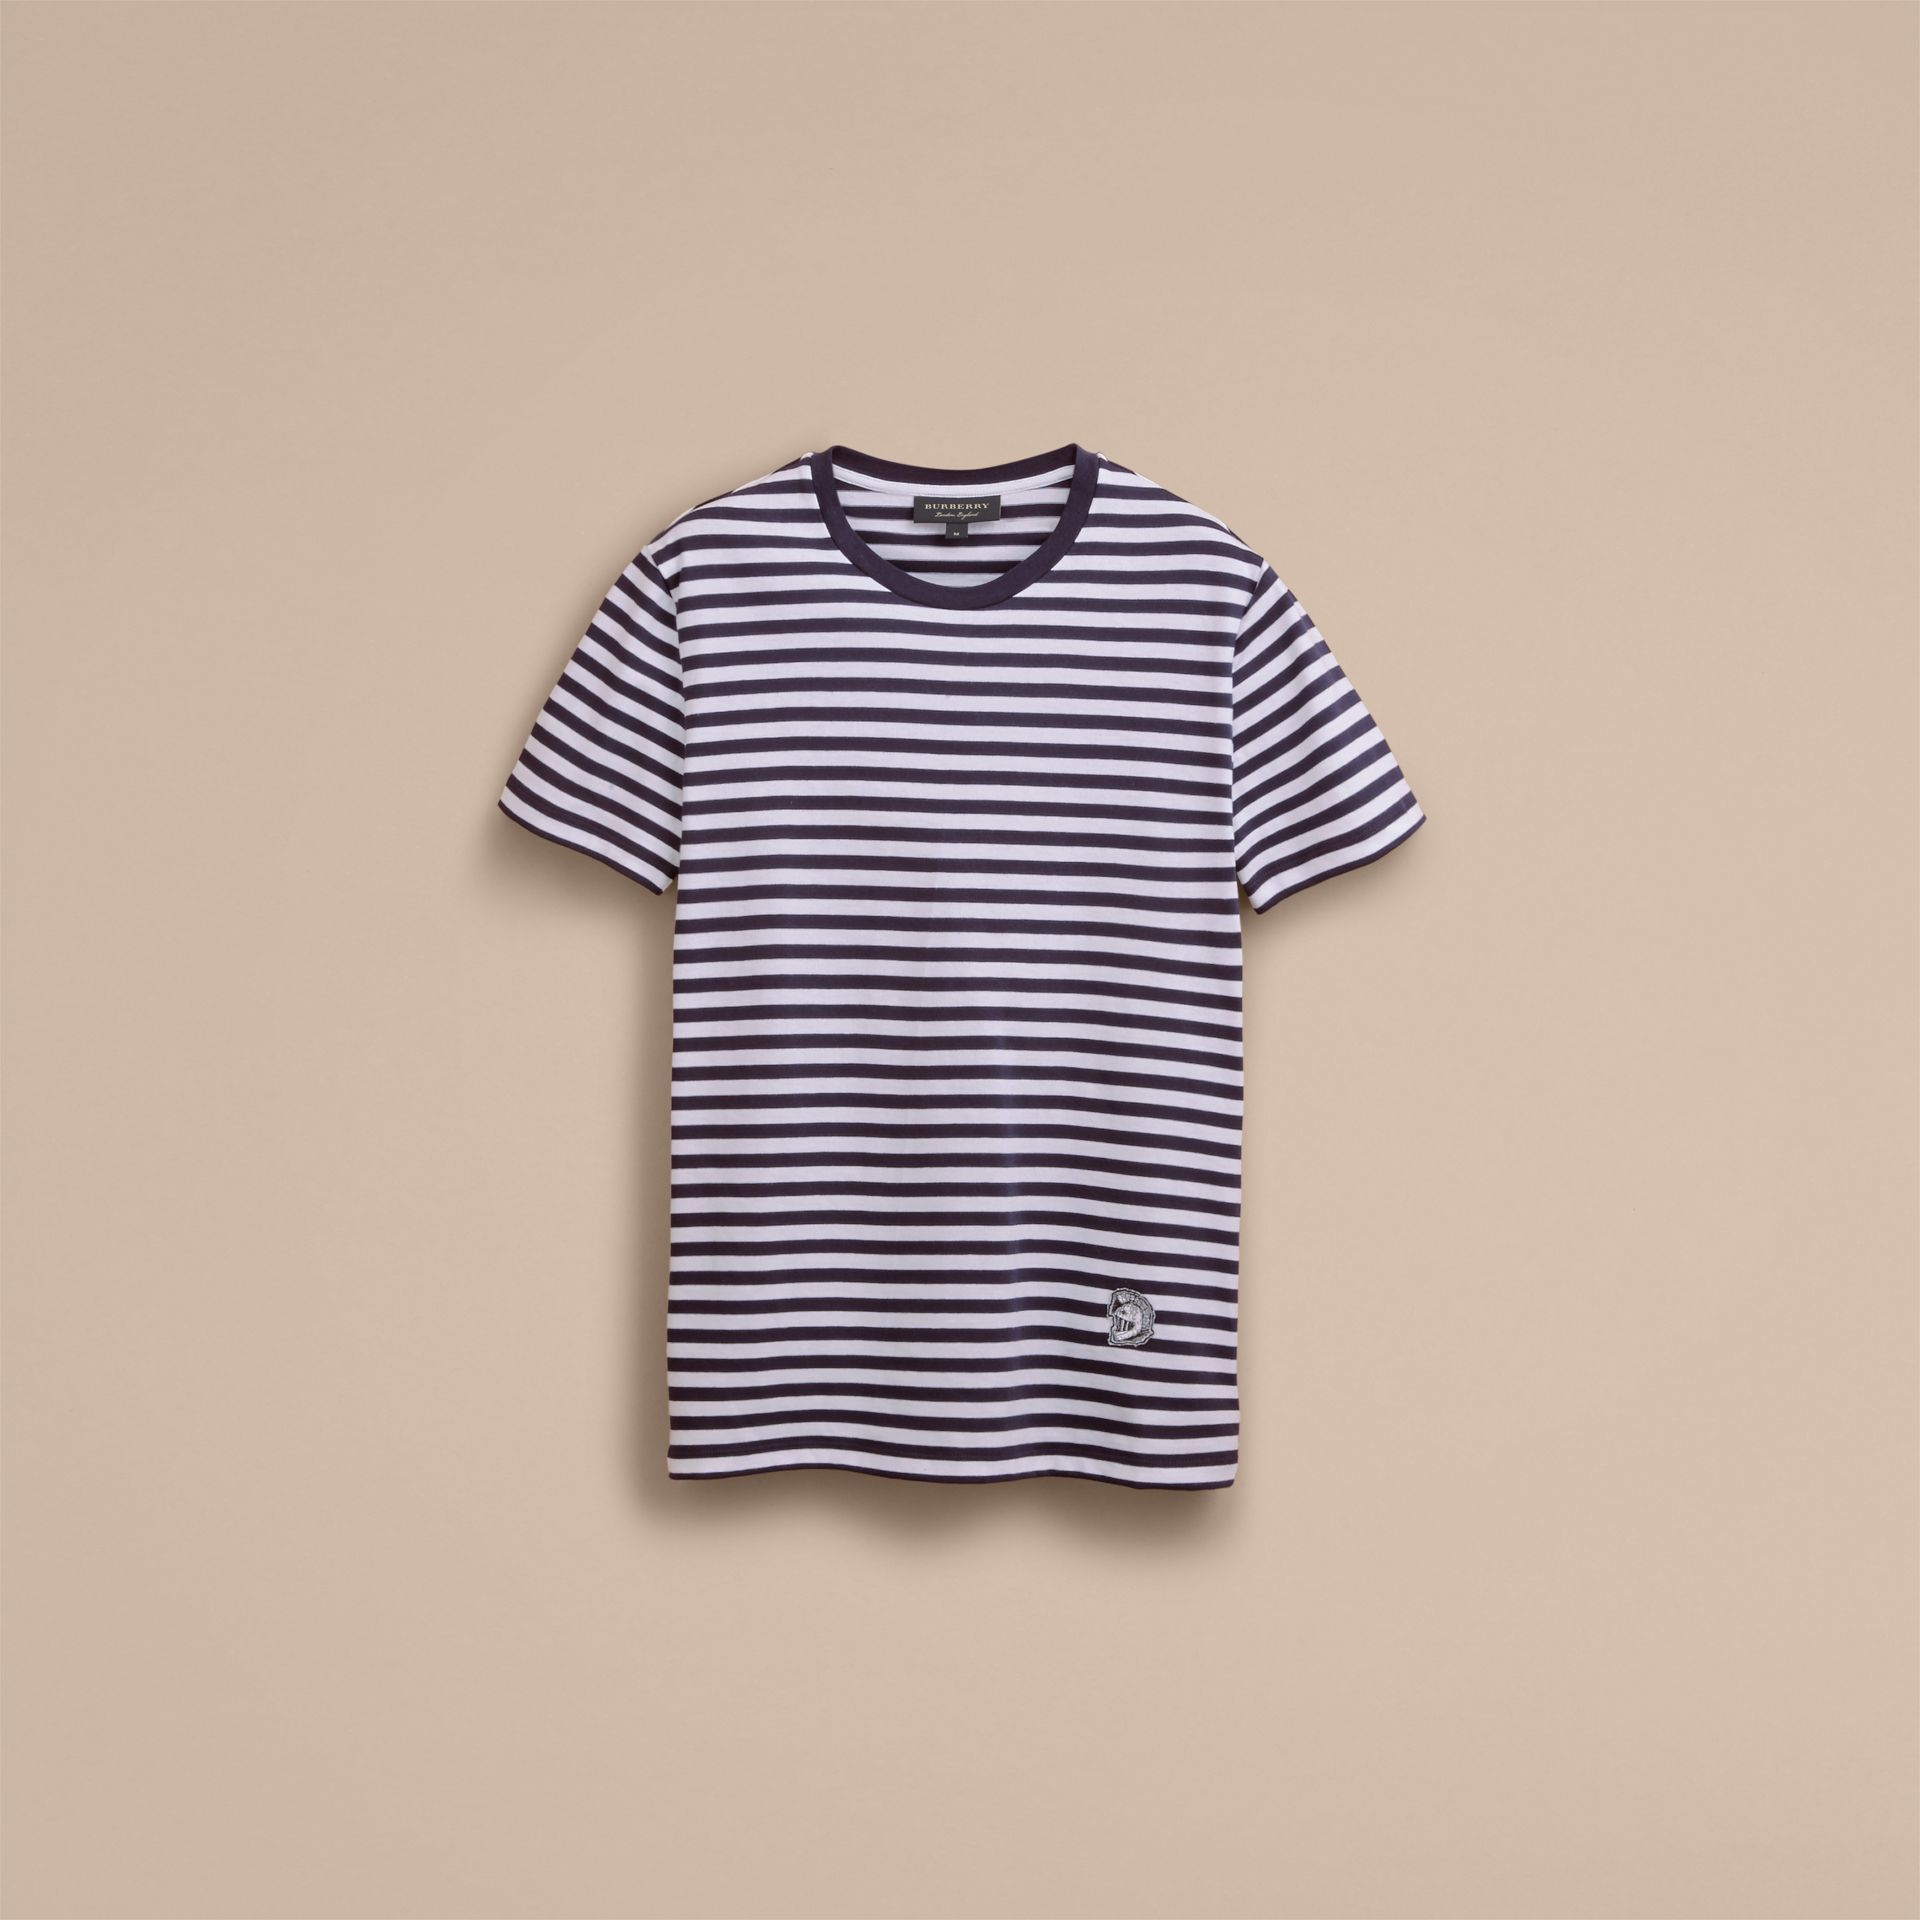 Breton Stripe Cotton T-shirt with Pallas Helmet Motif - gallery image 4